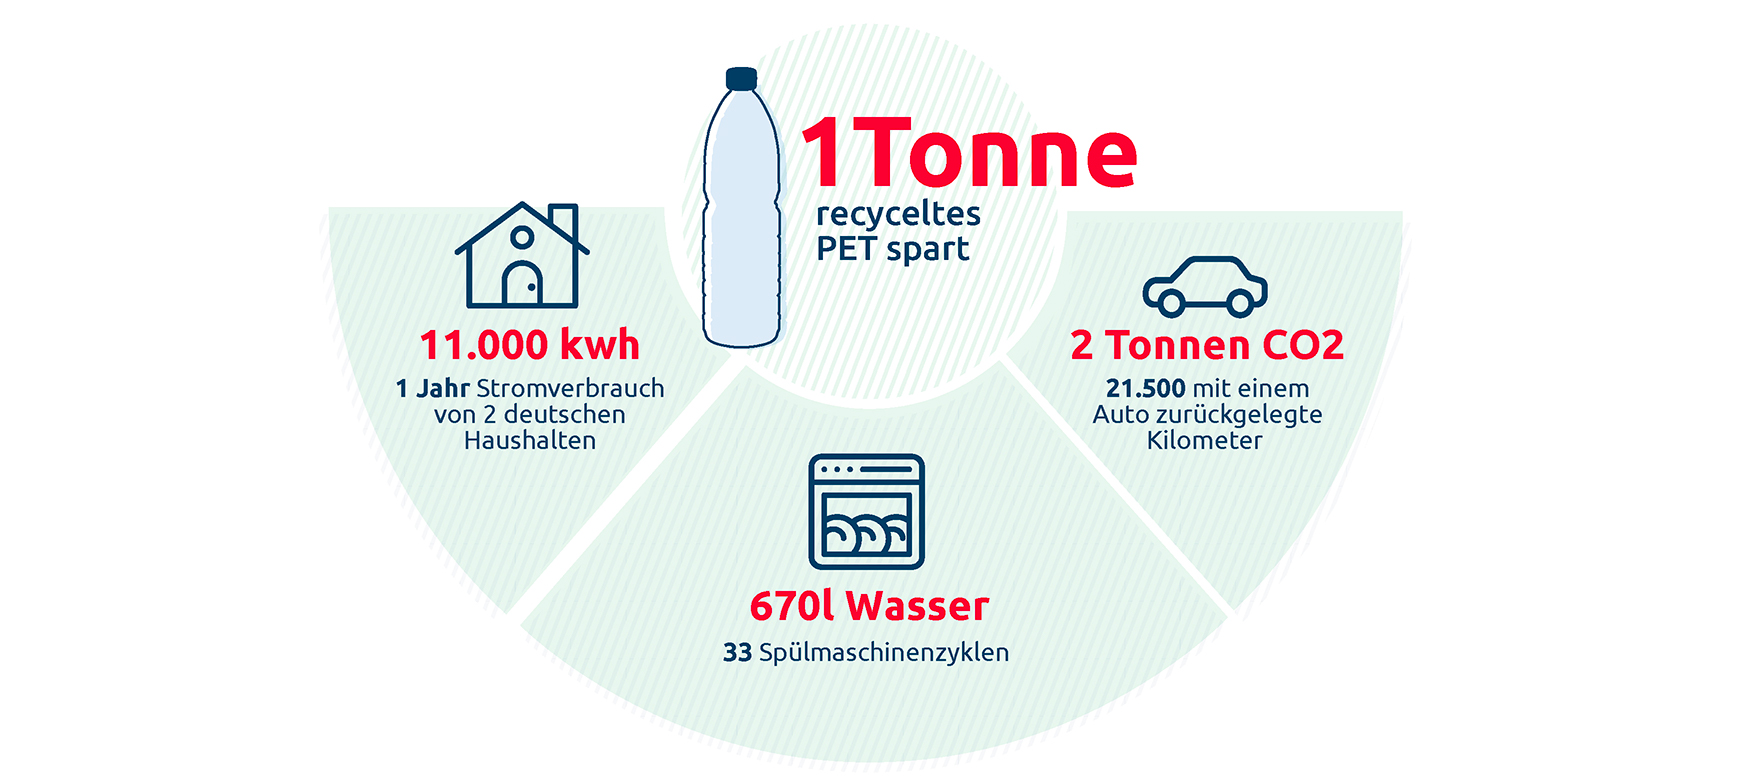 Vittel tonne recycletes PET